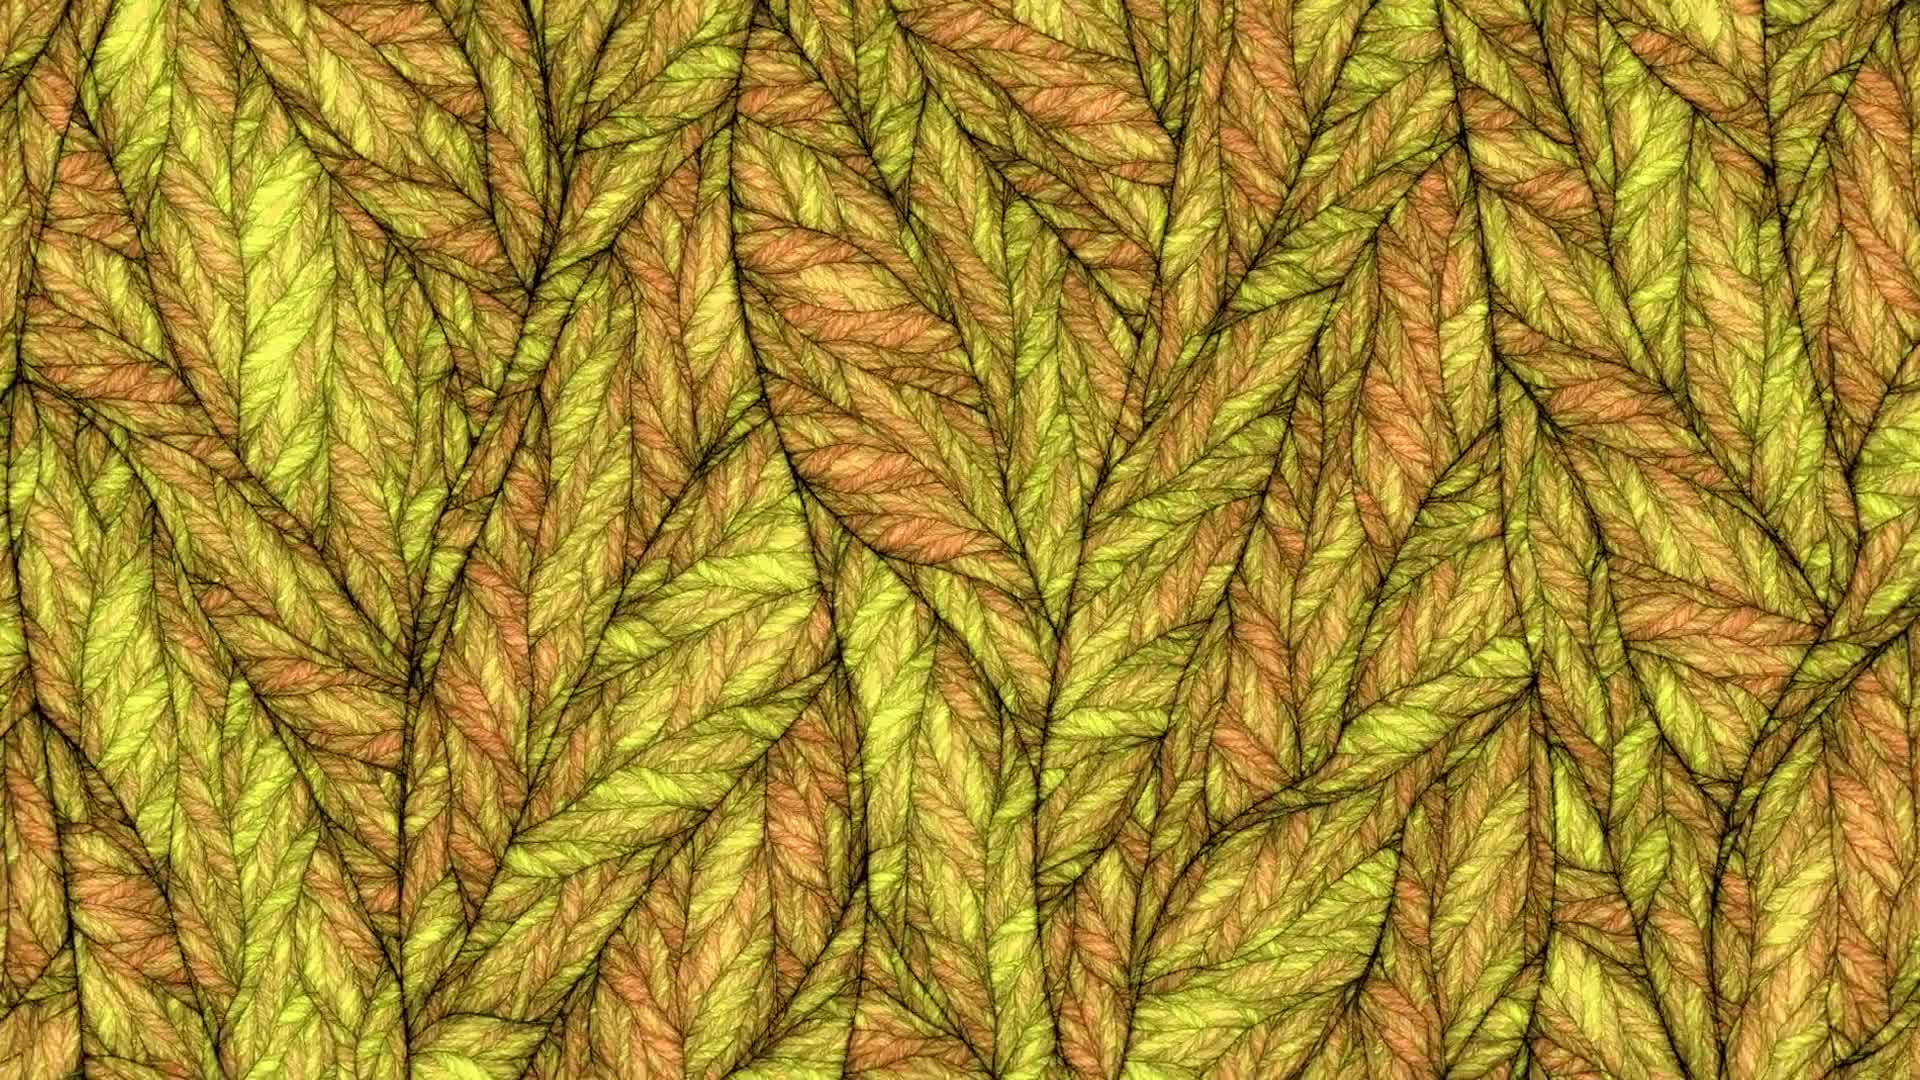 Veins leaf structure abstract zoom color change